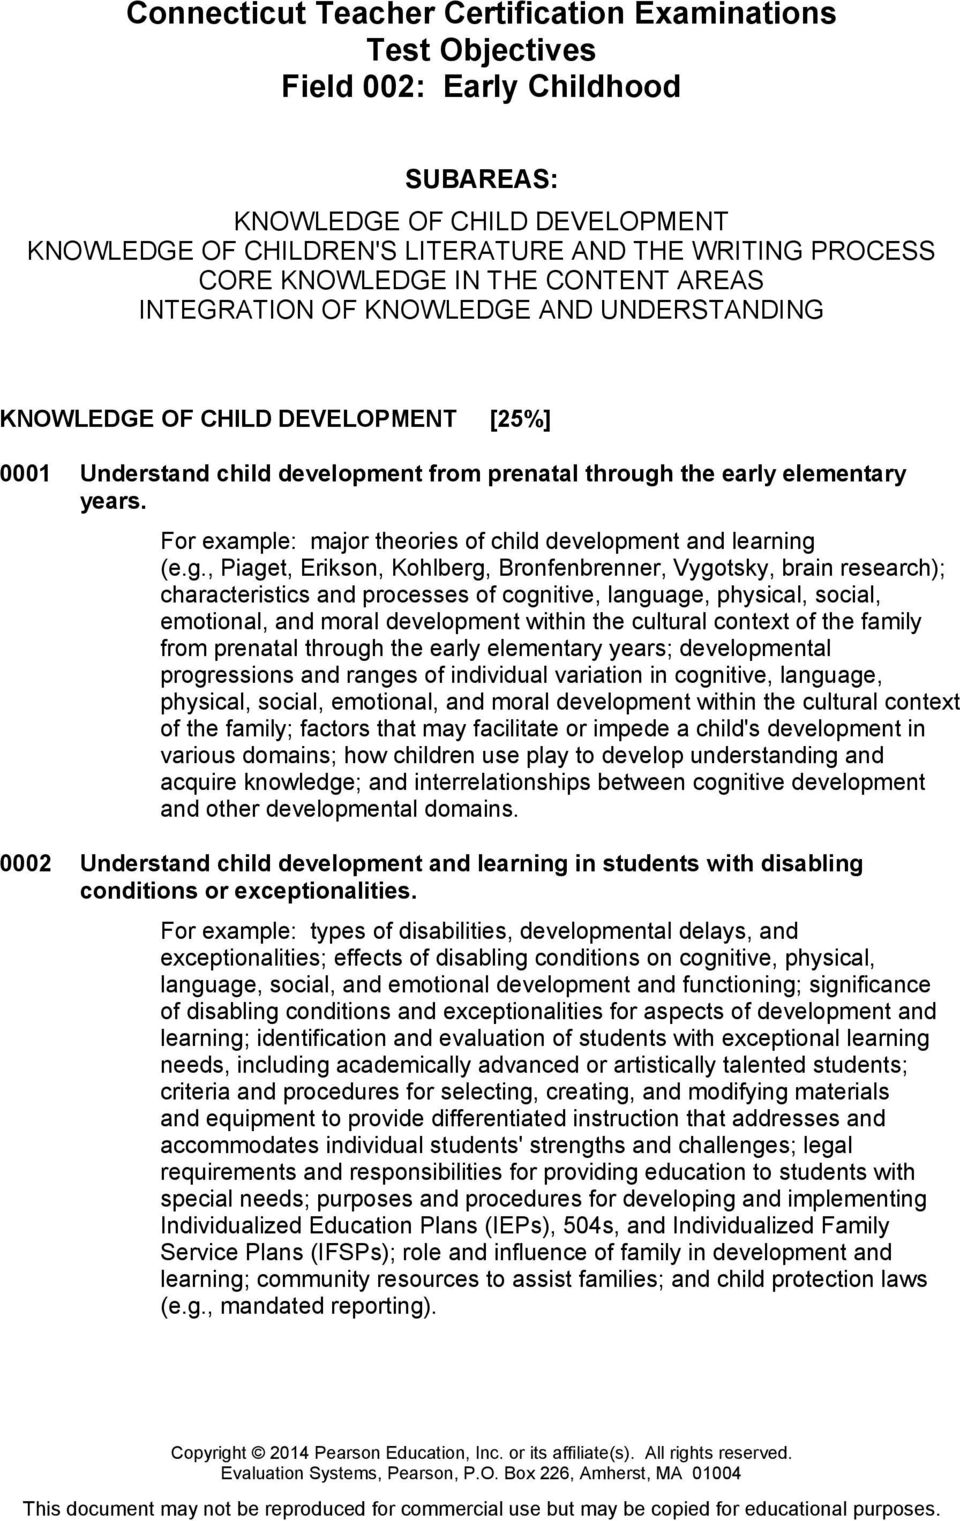 For example: major theories of child development and learning